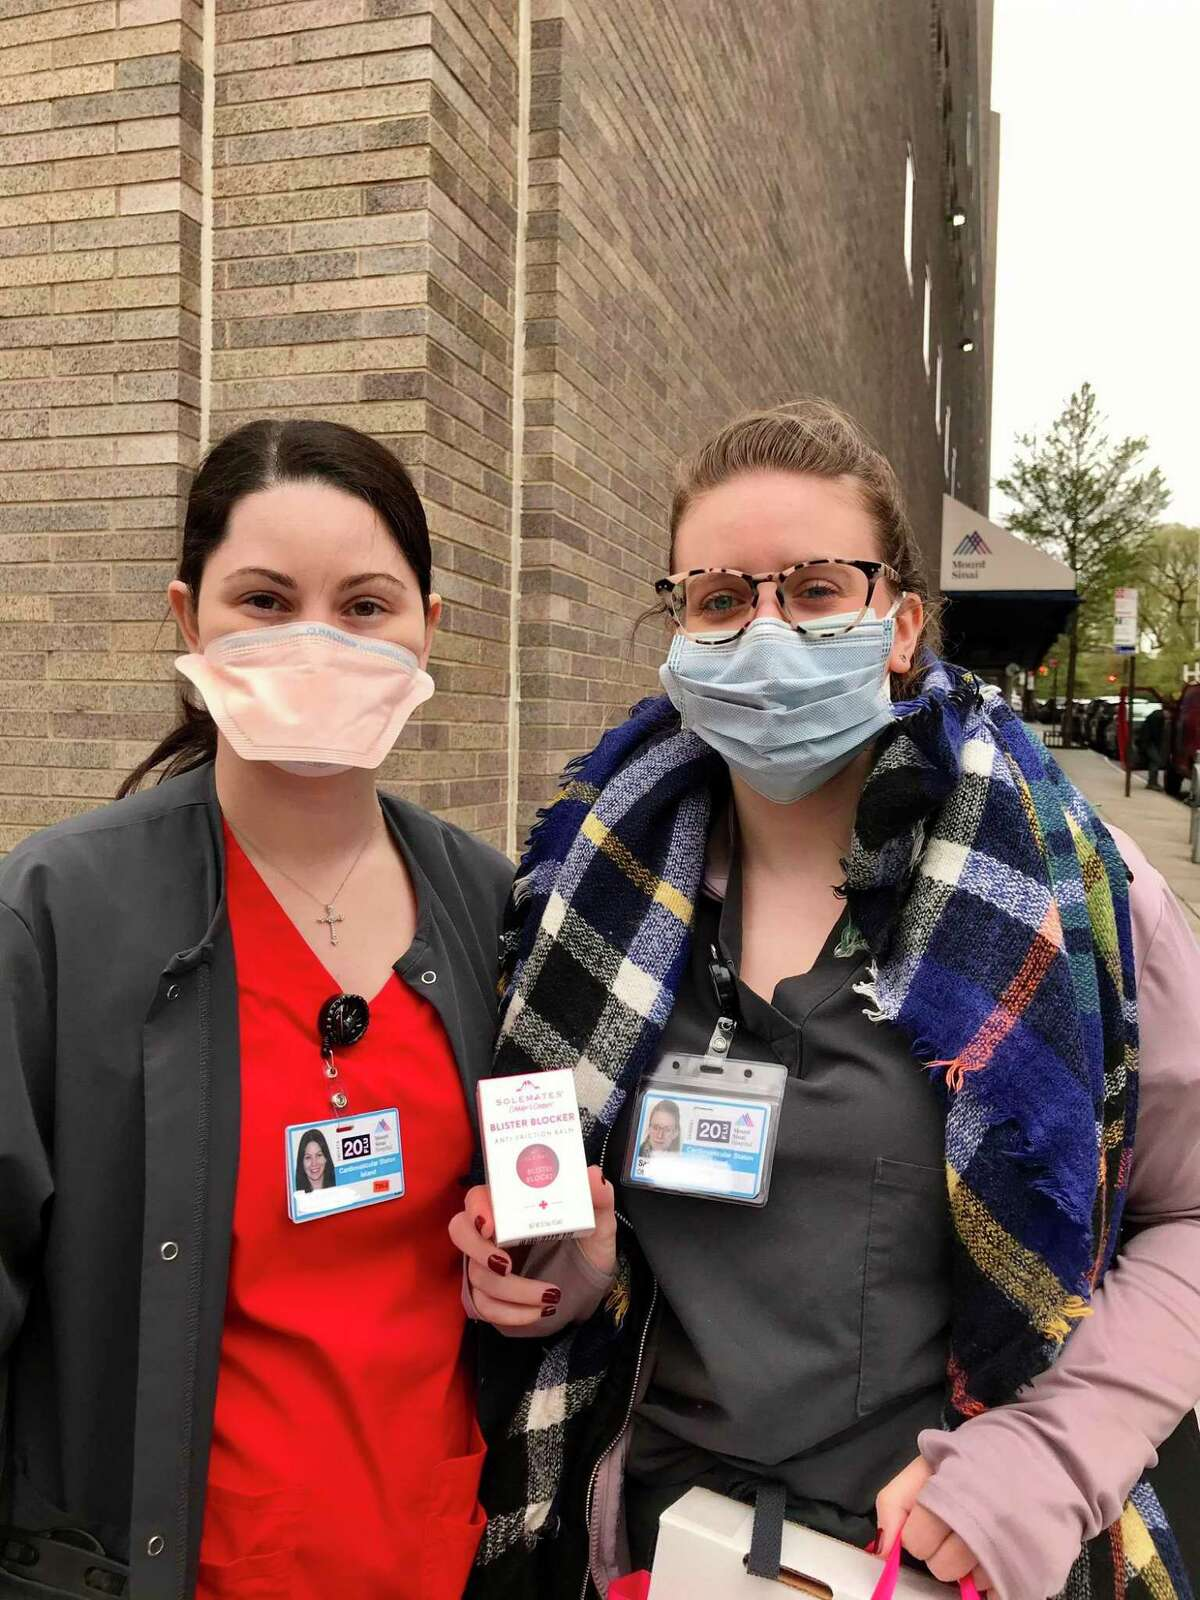 Solemates, a local company founded by Greenwich native Monica Ferguson and Becca Brown, has a product that is aiding healthcare workers that are experiencing face-chafing, due to wearing N95 masks during the COVID-19 pandemic. The company began a program in which it donates one of its Blister Blocker products to the healthcare community for each one a customer purchases.